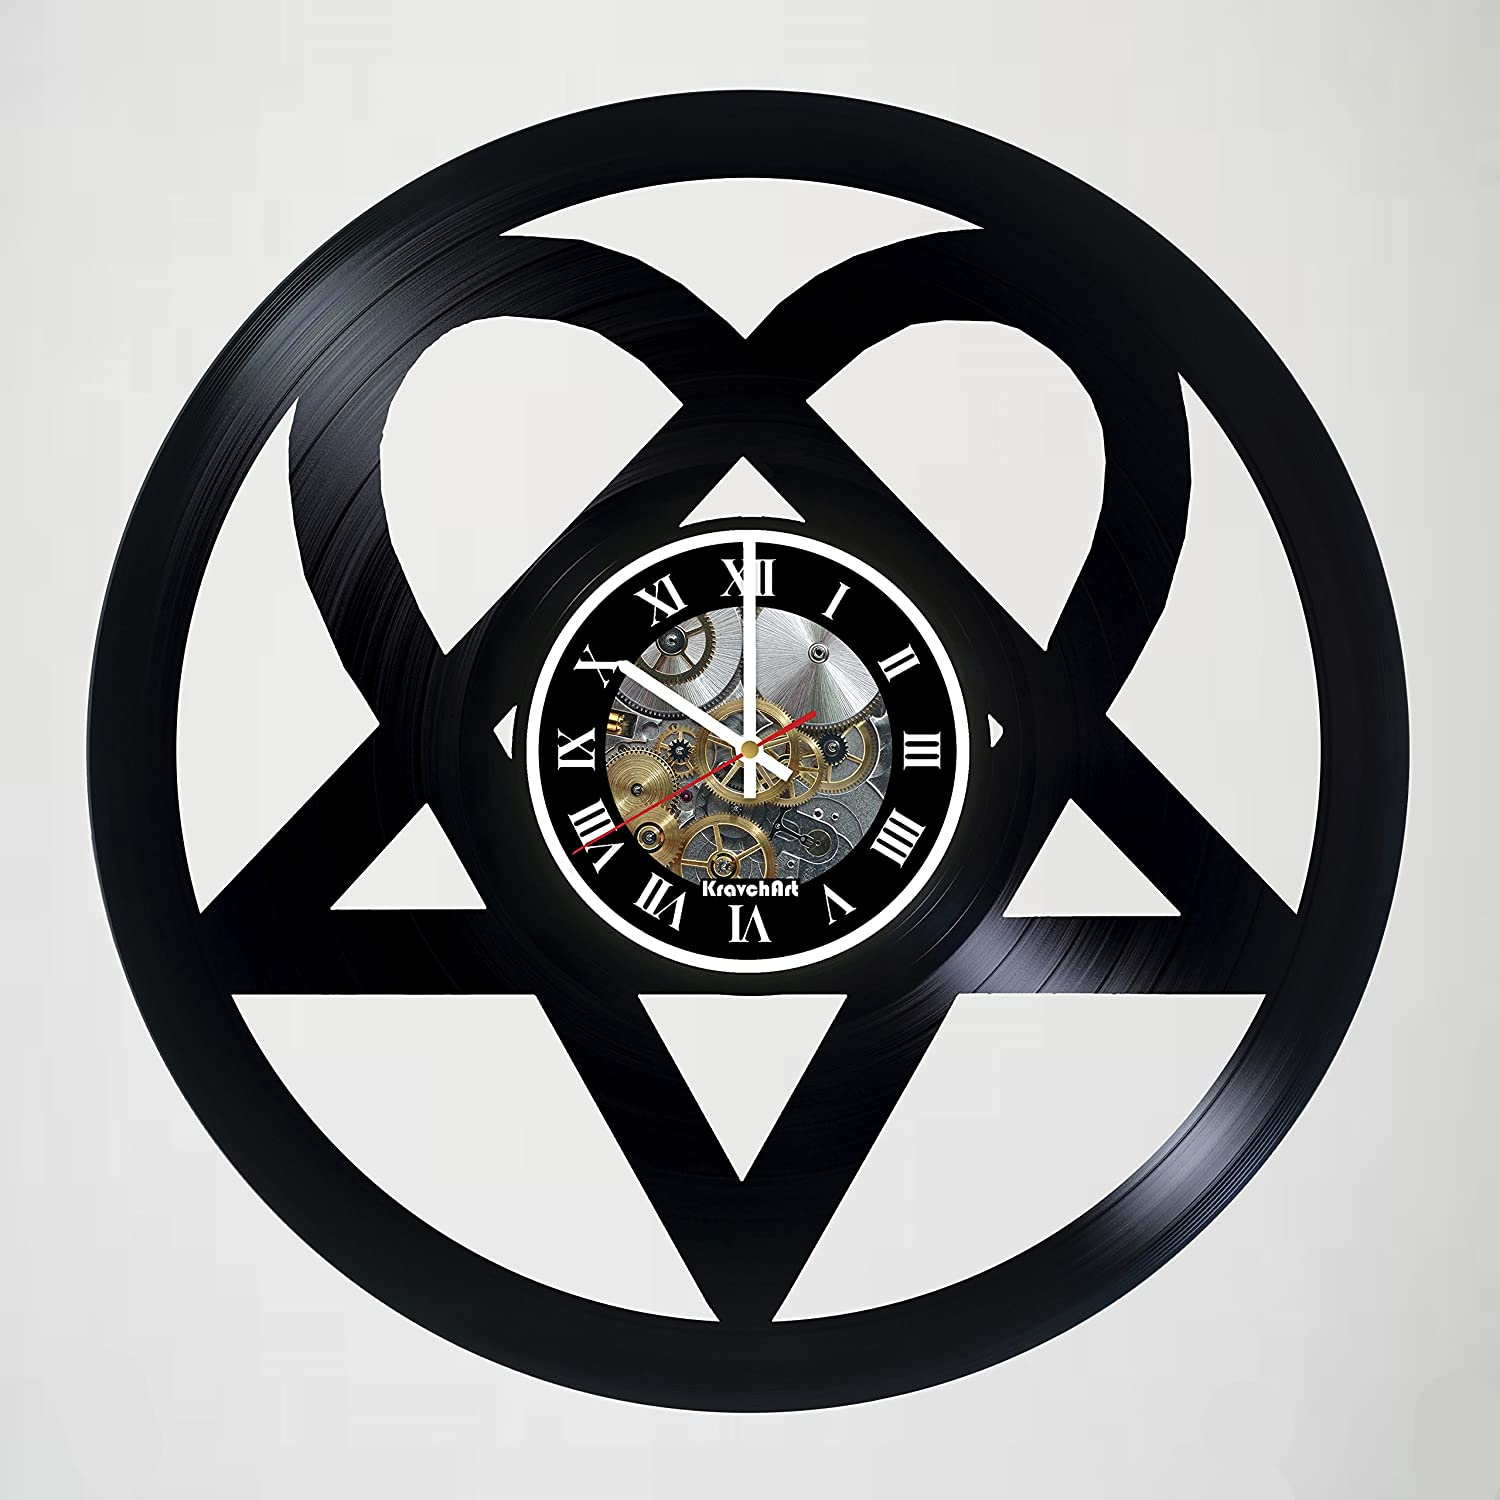 KravchArt H.I.M. - Heartagram - Music Band Design Handmade Vinyl Record Wall Clock for Birthday Wedding Anniversary Valentine's Mother's Ideas for Men and Women him and her